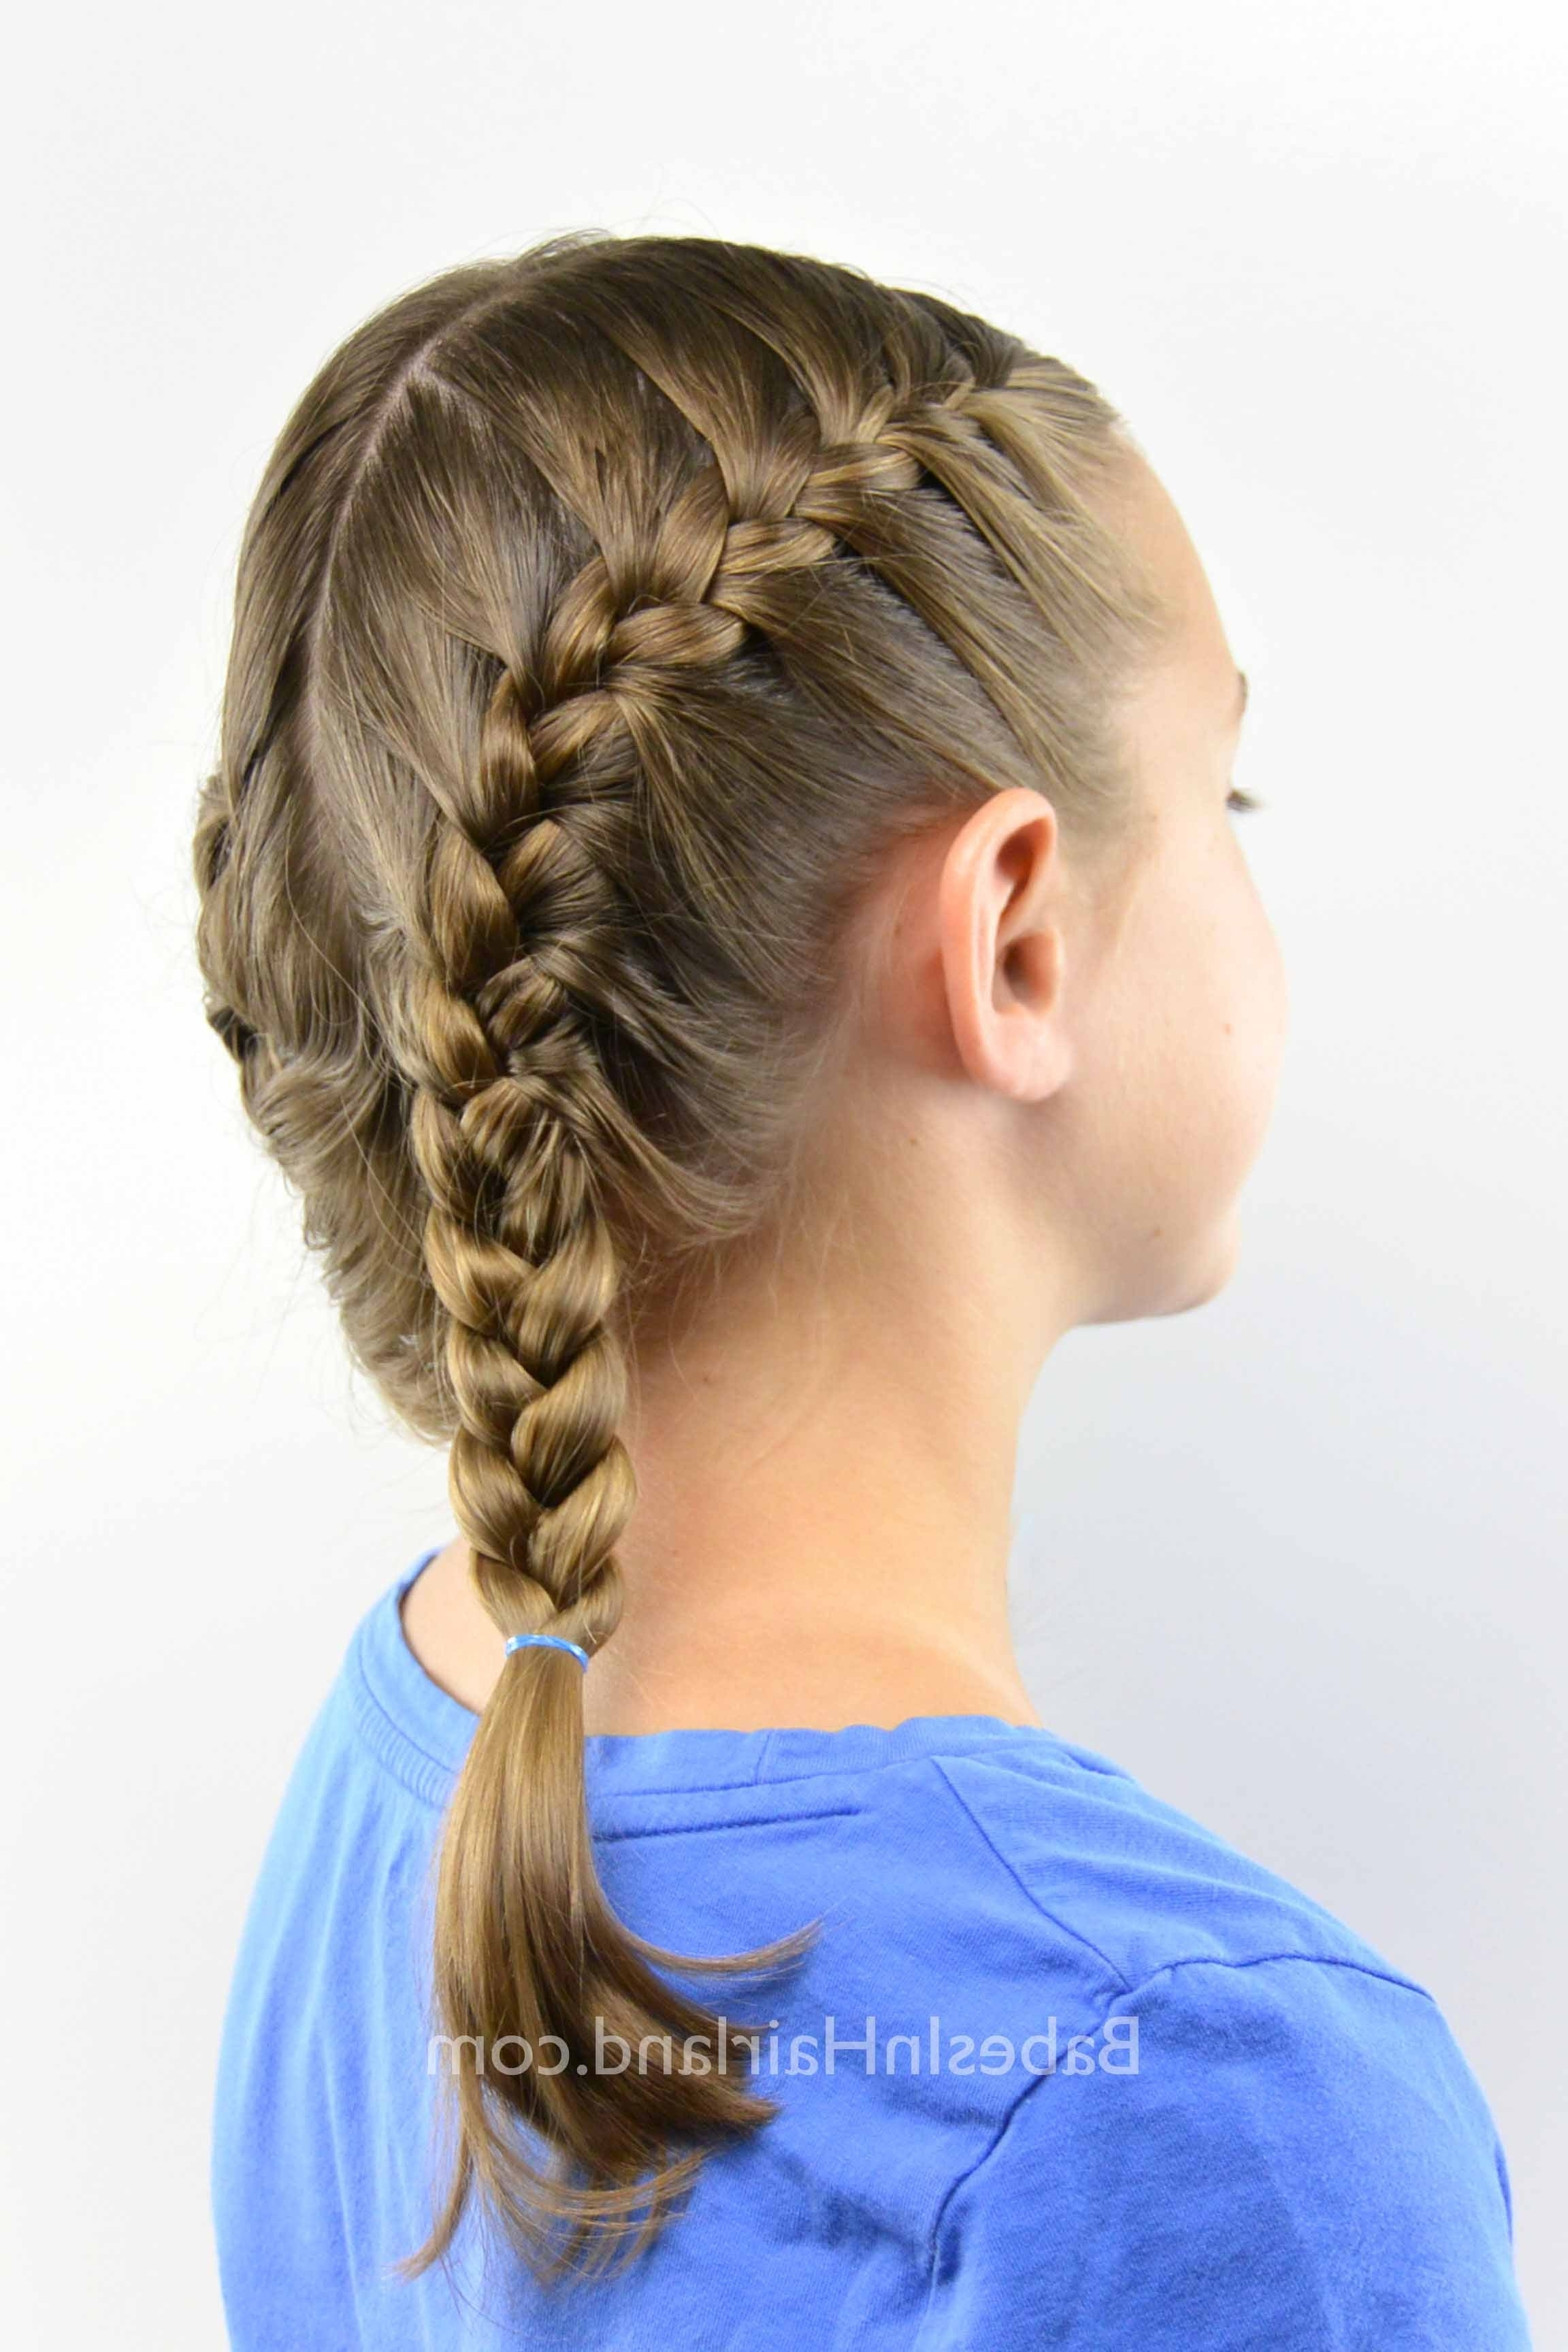 How To Get A Tight French Braid – Babes In Hairland For Recent French Braid Hairstyles With Bubbles (View 6 of 15)